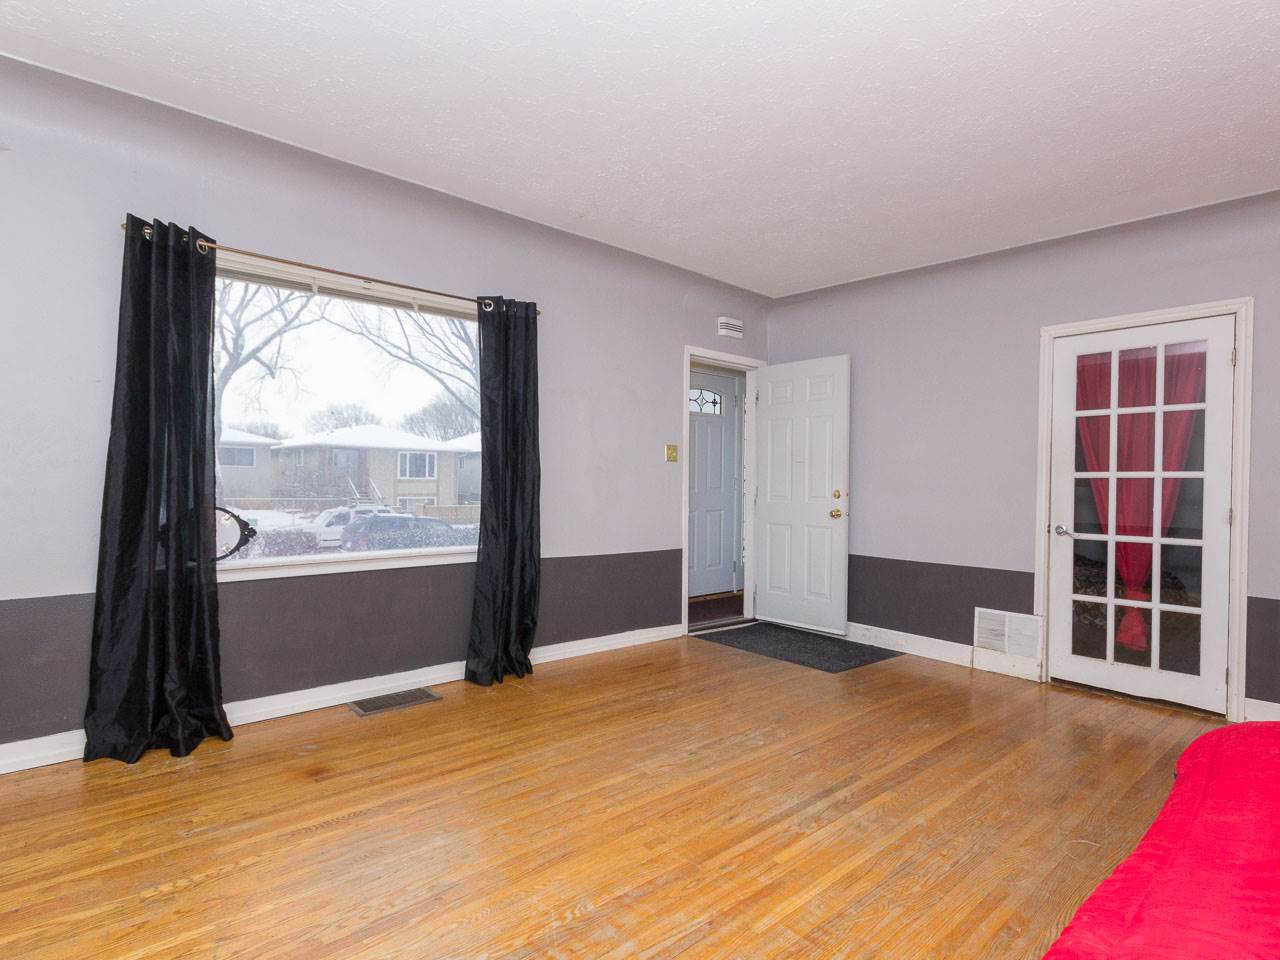 Photo 2: 12139 64 Street in Edmonton: Zone 06 House for sale : MLS® # E4077626